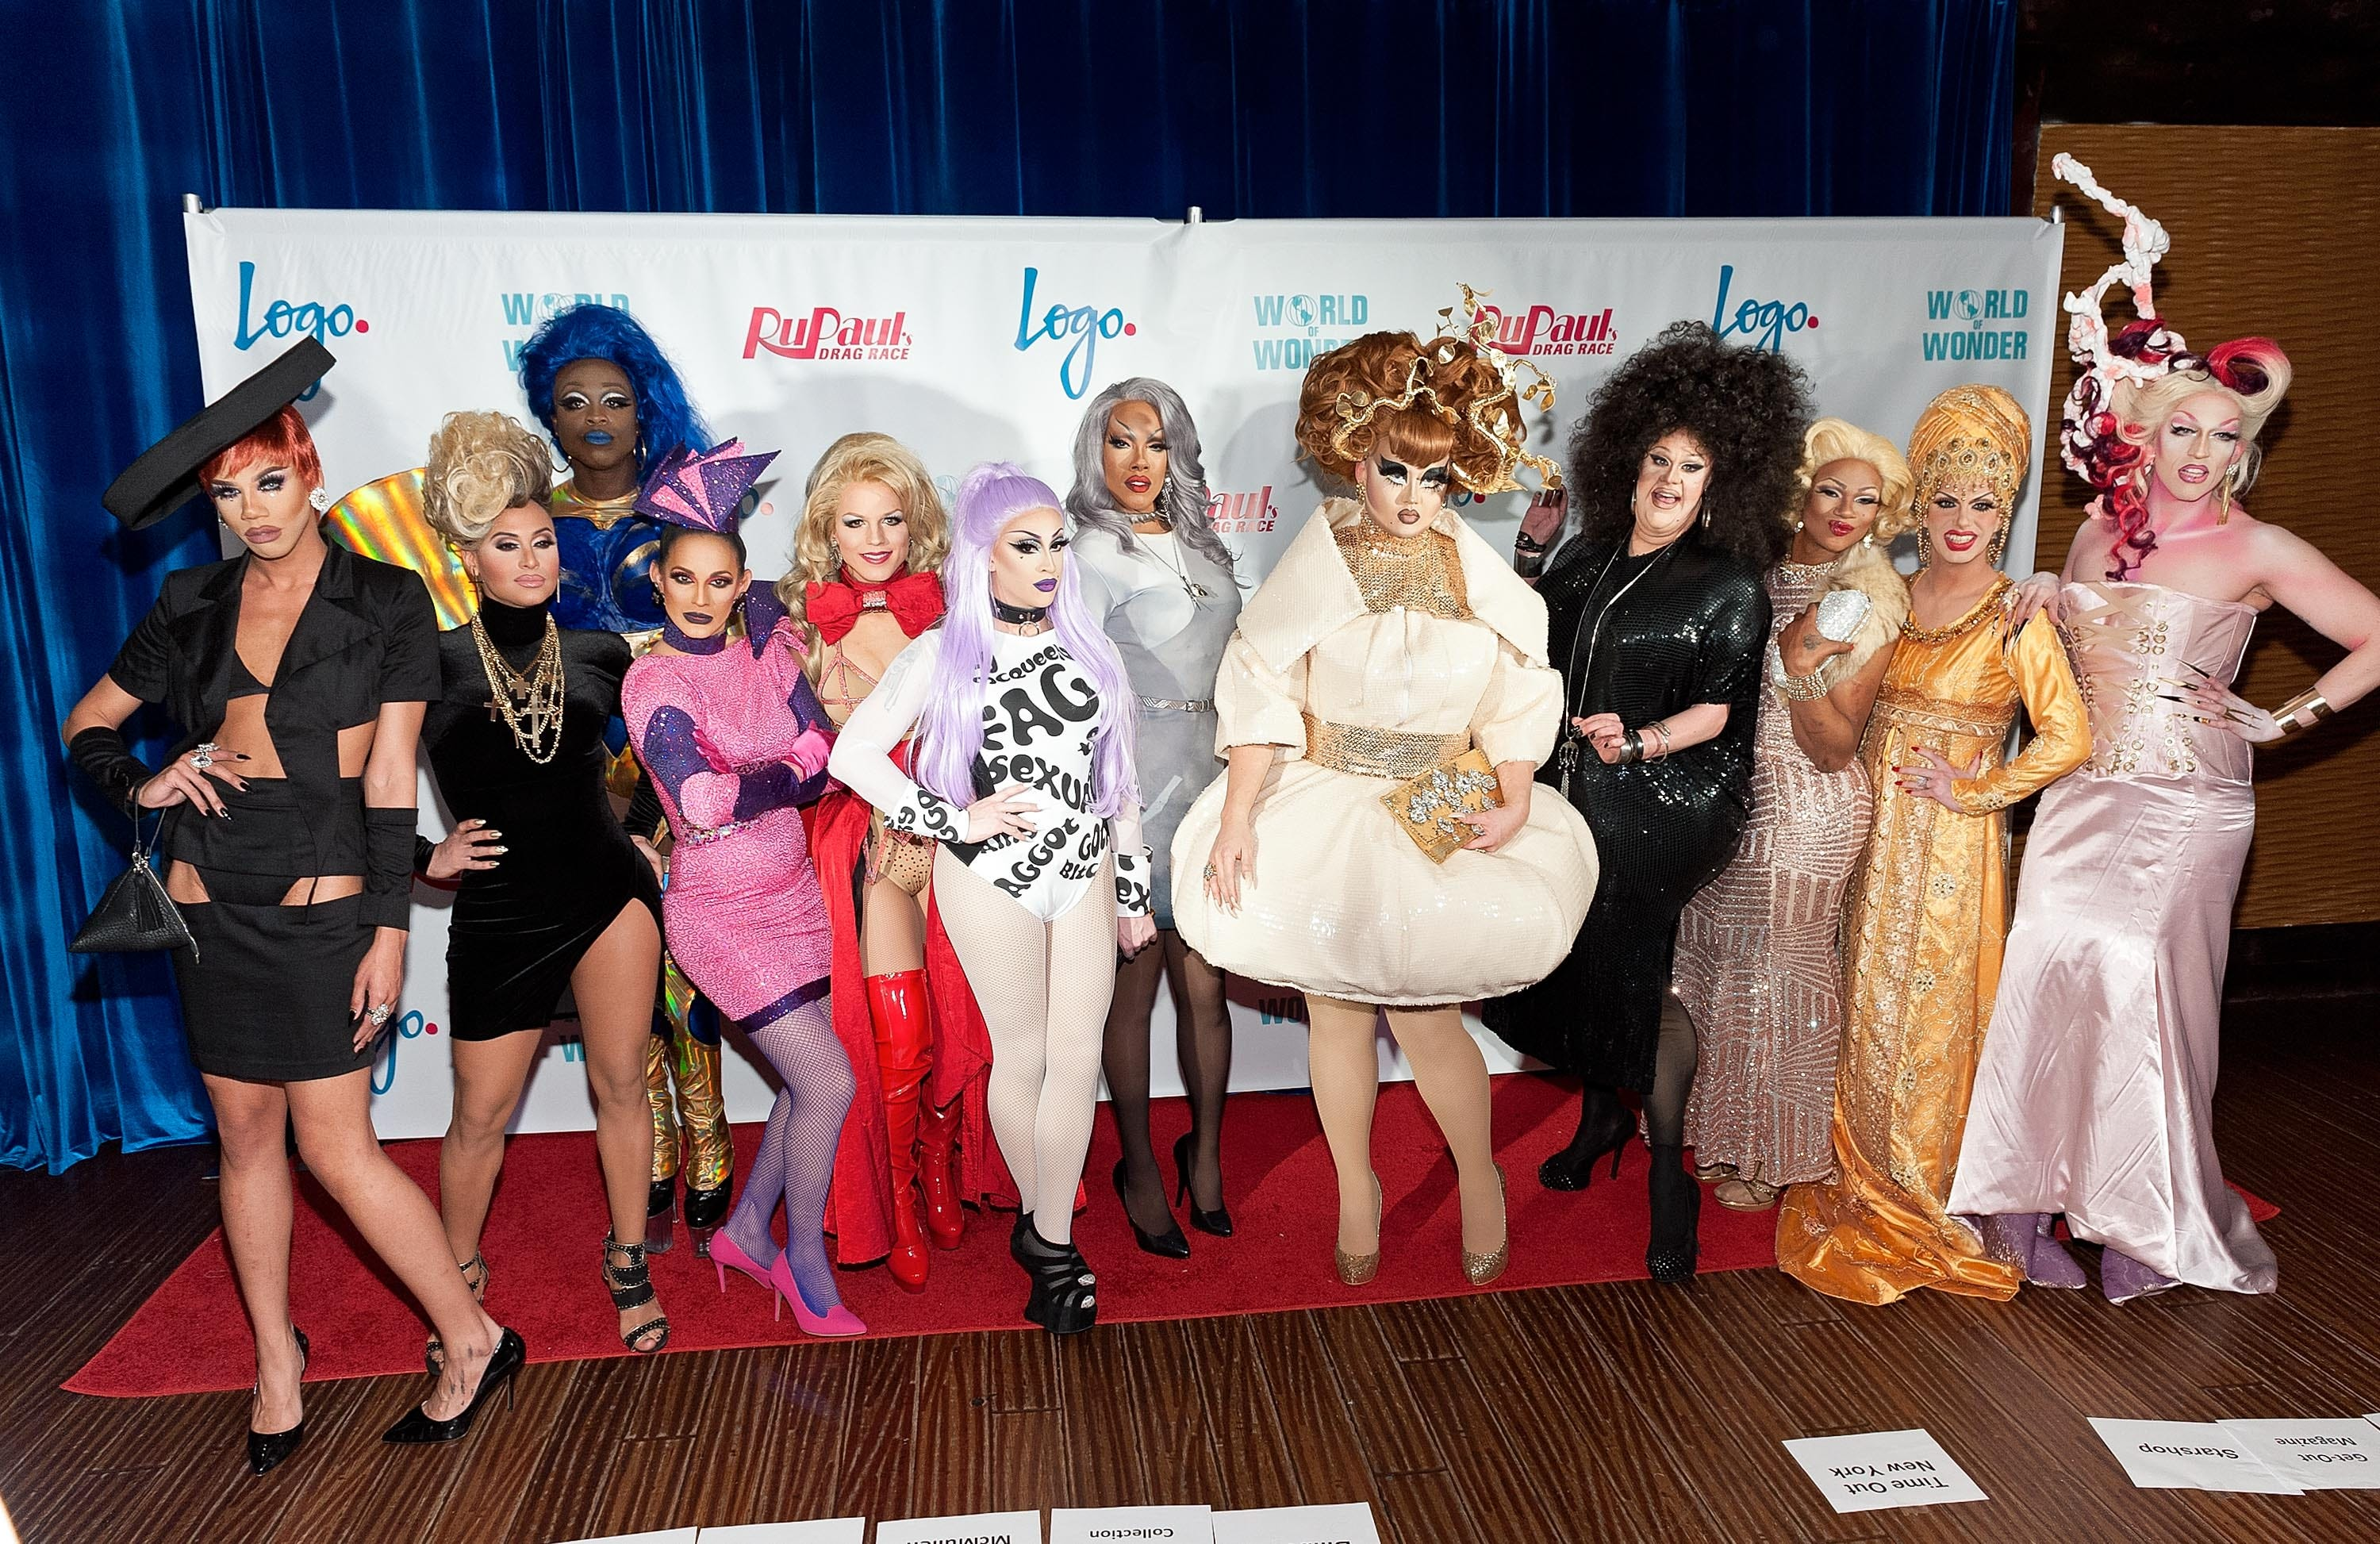 Who are the top queens in 'RuPaul's Drag Race'? Catch up before the finale